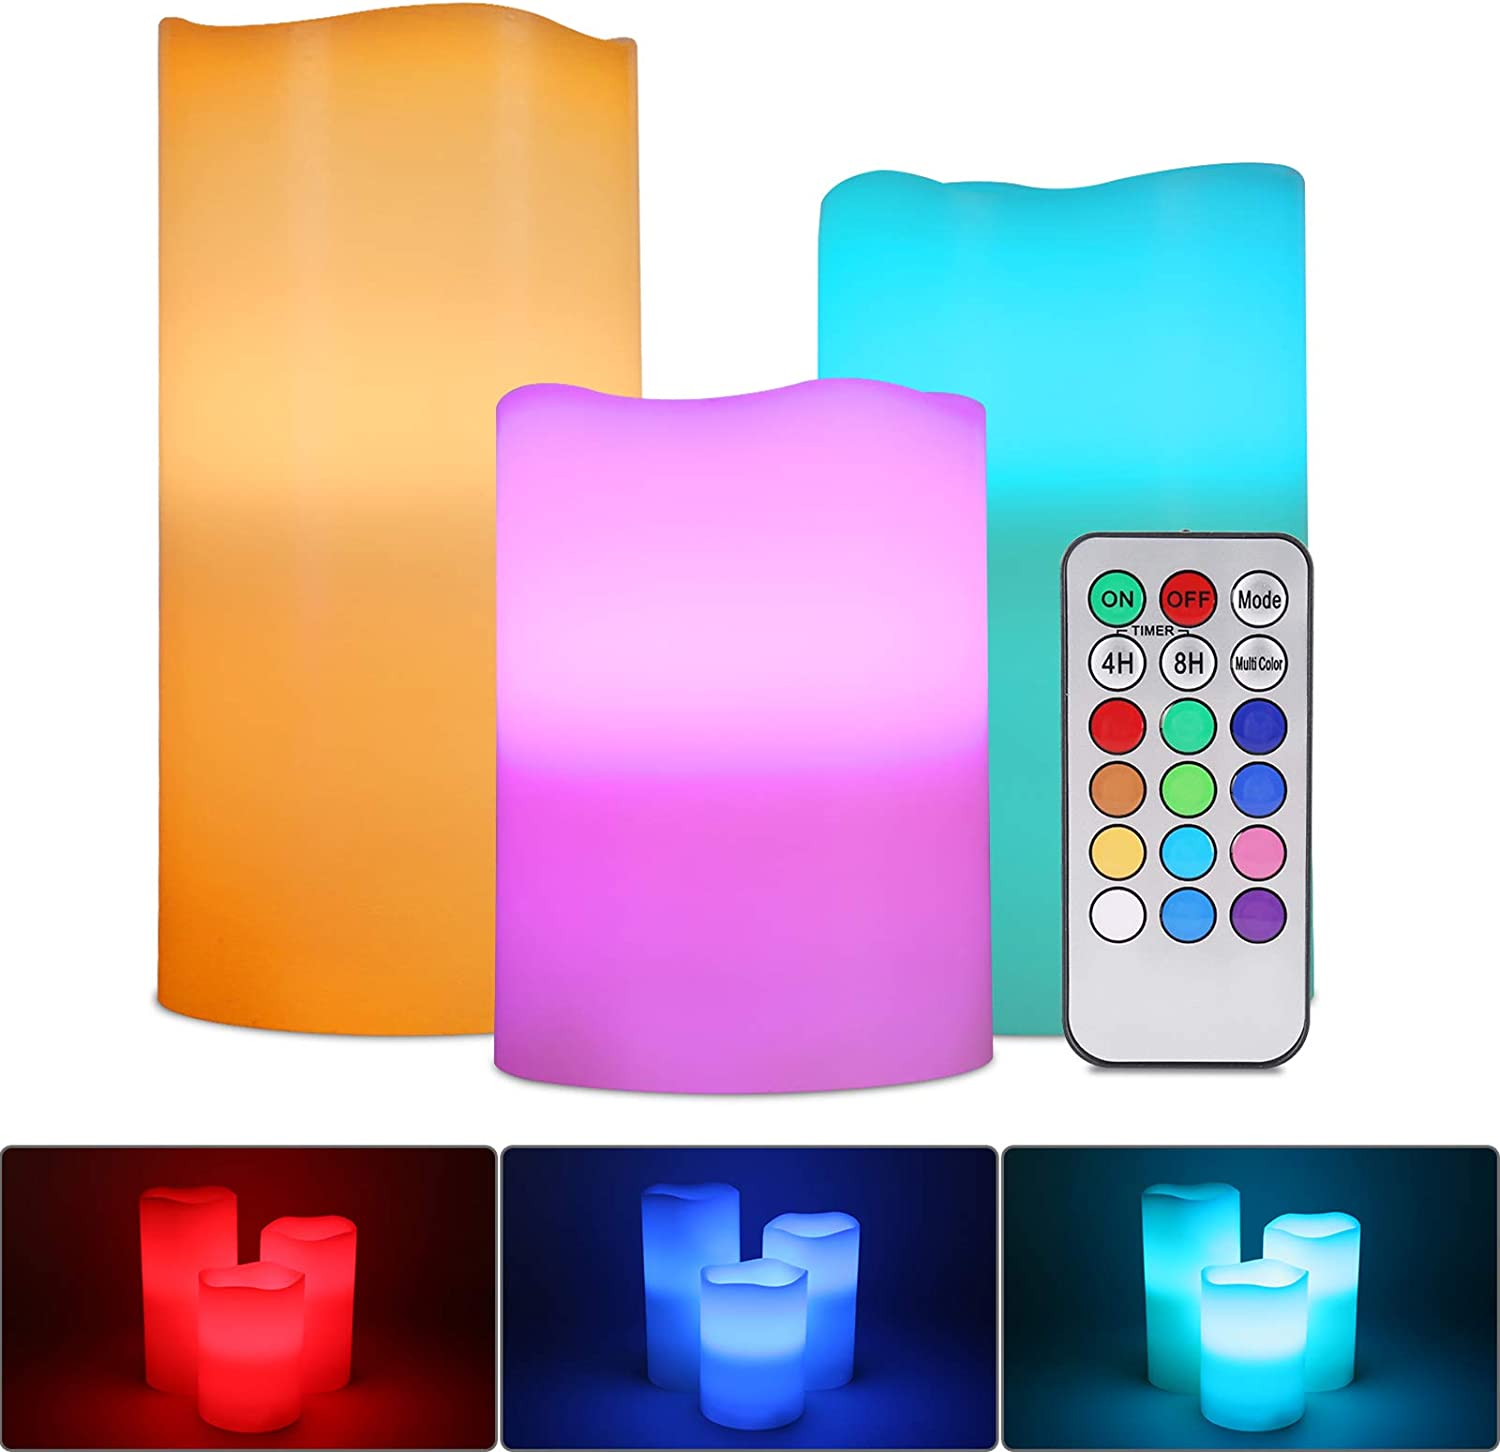 RGB Flameless Candles Light, ALED LIGHT 3 Pack Multicolor Real Wax Tea Lights Battery Operated Pillar Candles Electric LED Flickering Candle Lights with Remote Control Timer for Decoration, Wedding